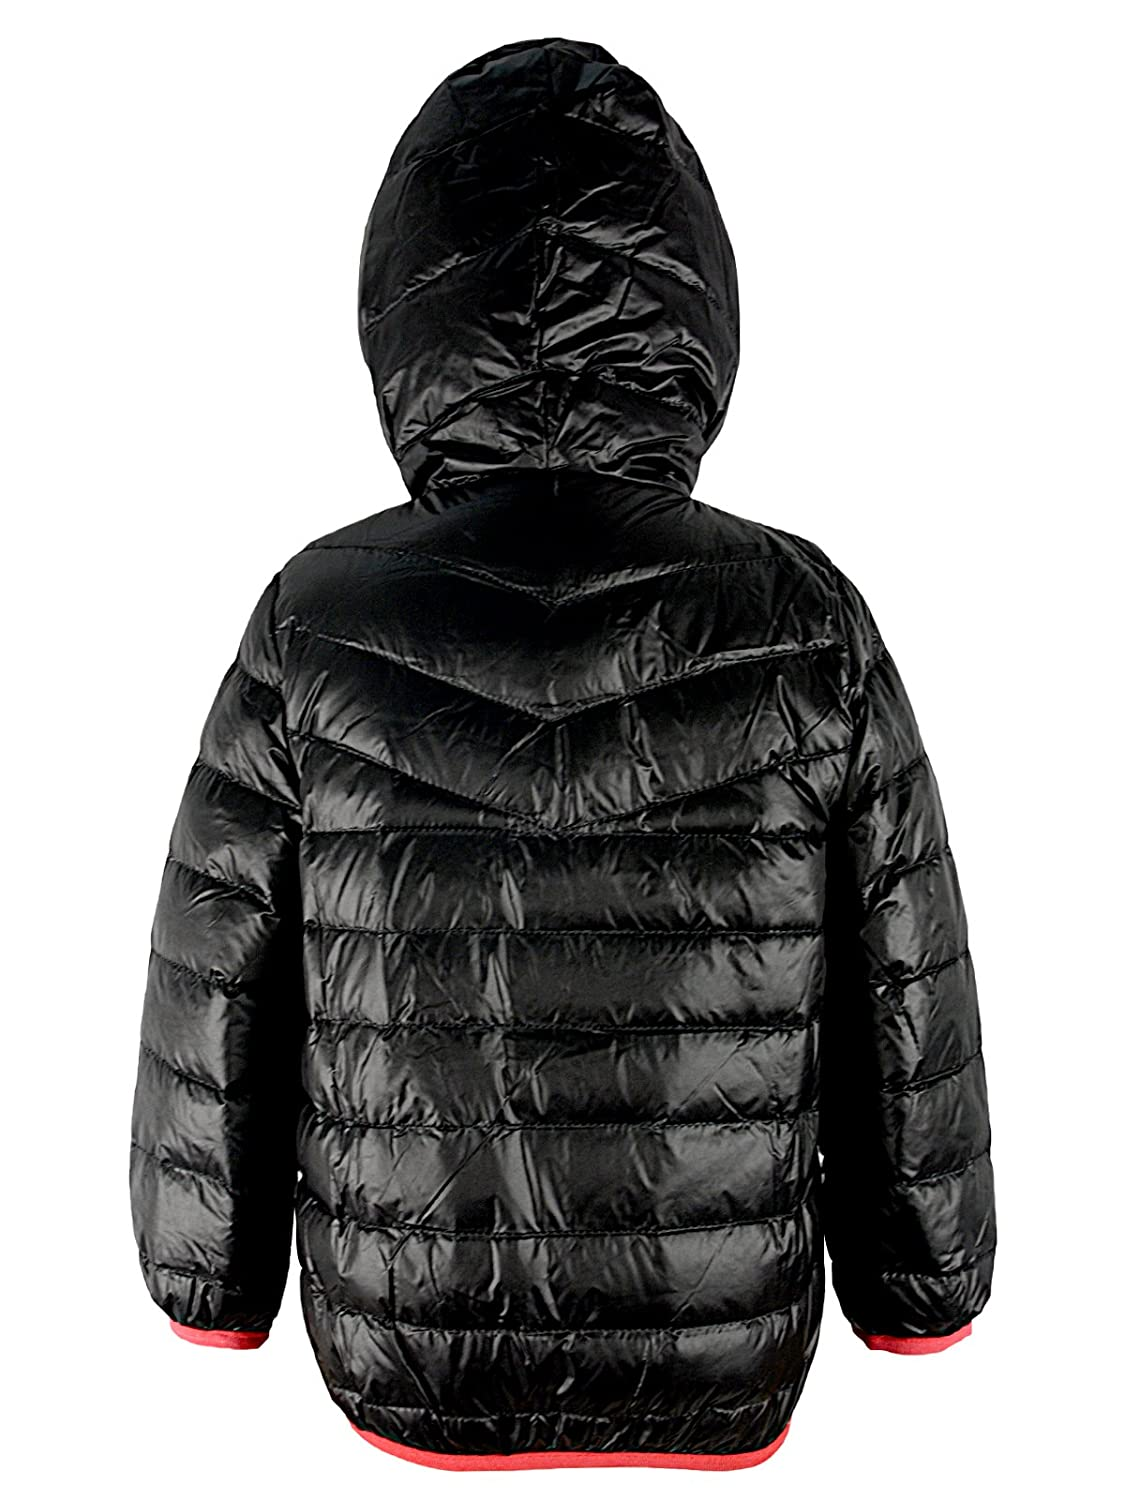 62bf21ba2 American Trends Kids Warm Down Jackets Breathable Winter Outerwear  Ultralight Packable Hooded Puffer Parka Zipper Coat